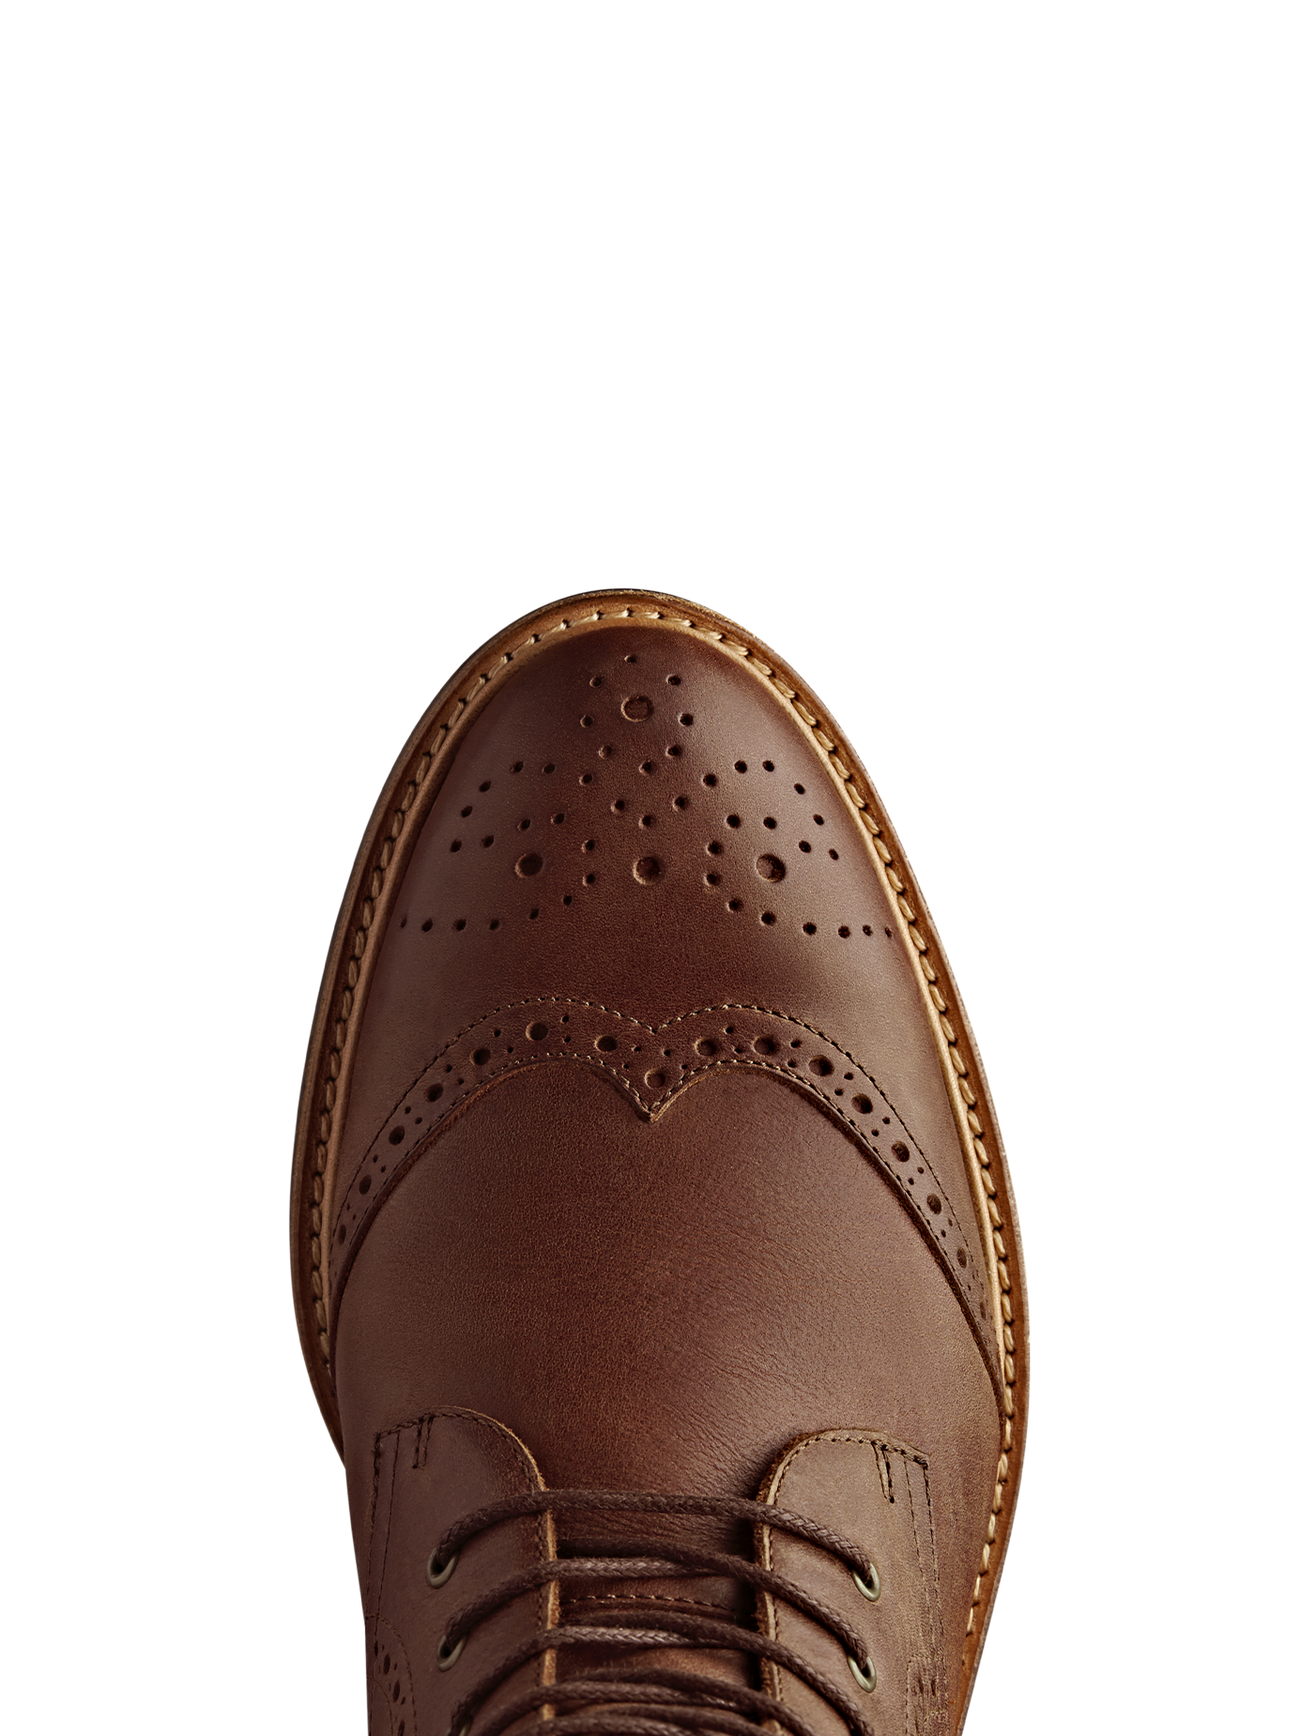 Balla chestnut has beautiful brogue detailing over the round shaped toe.